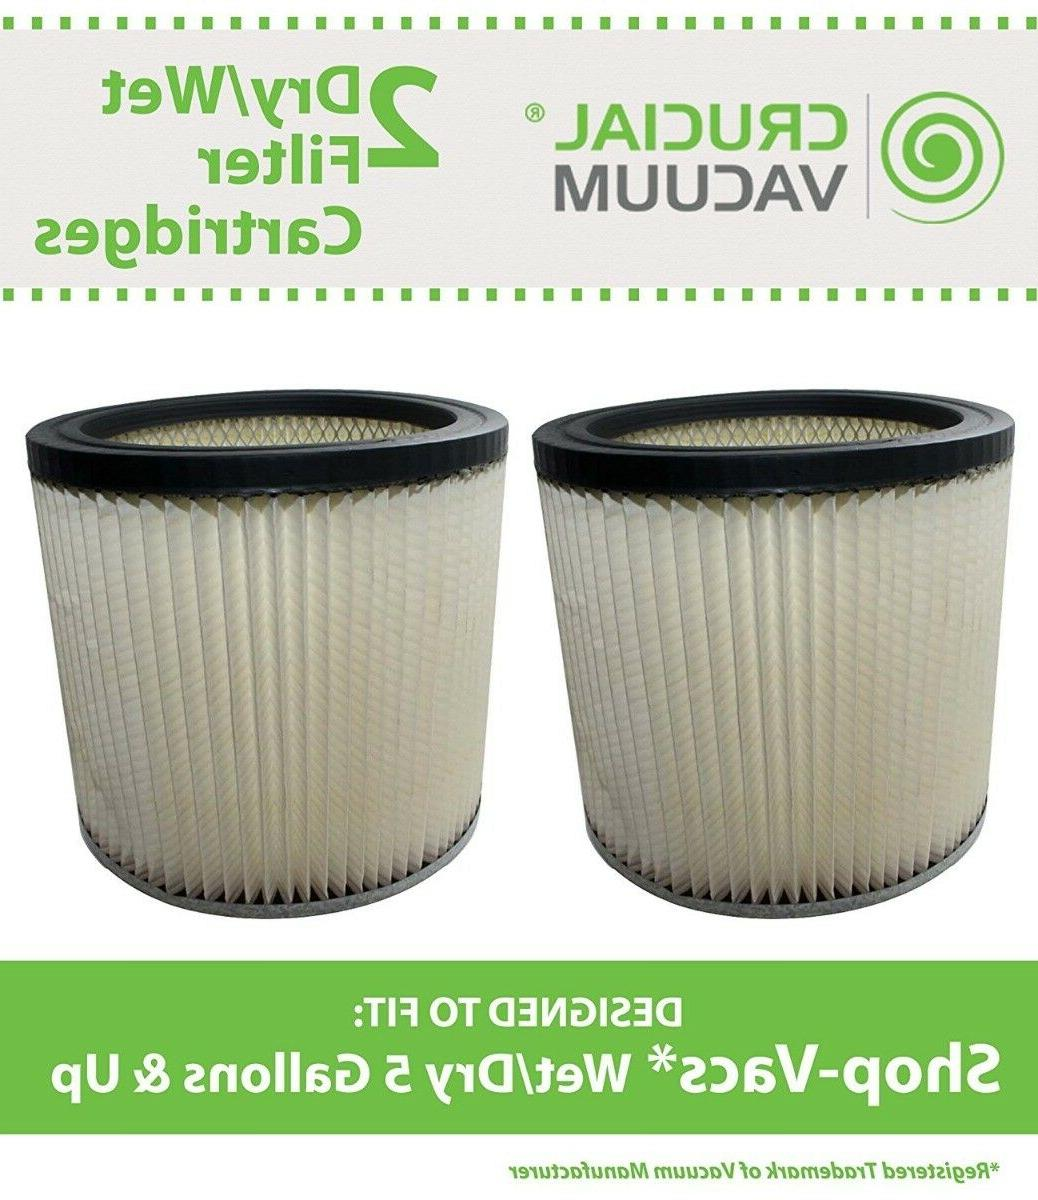 2 replacement shopvac dry wet cartridge filter